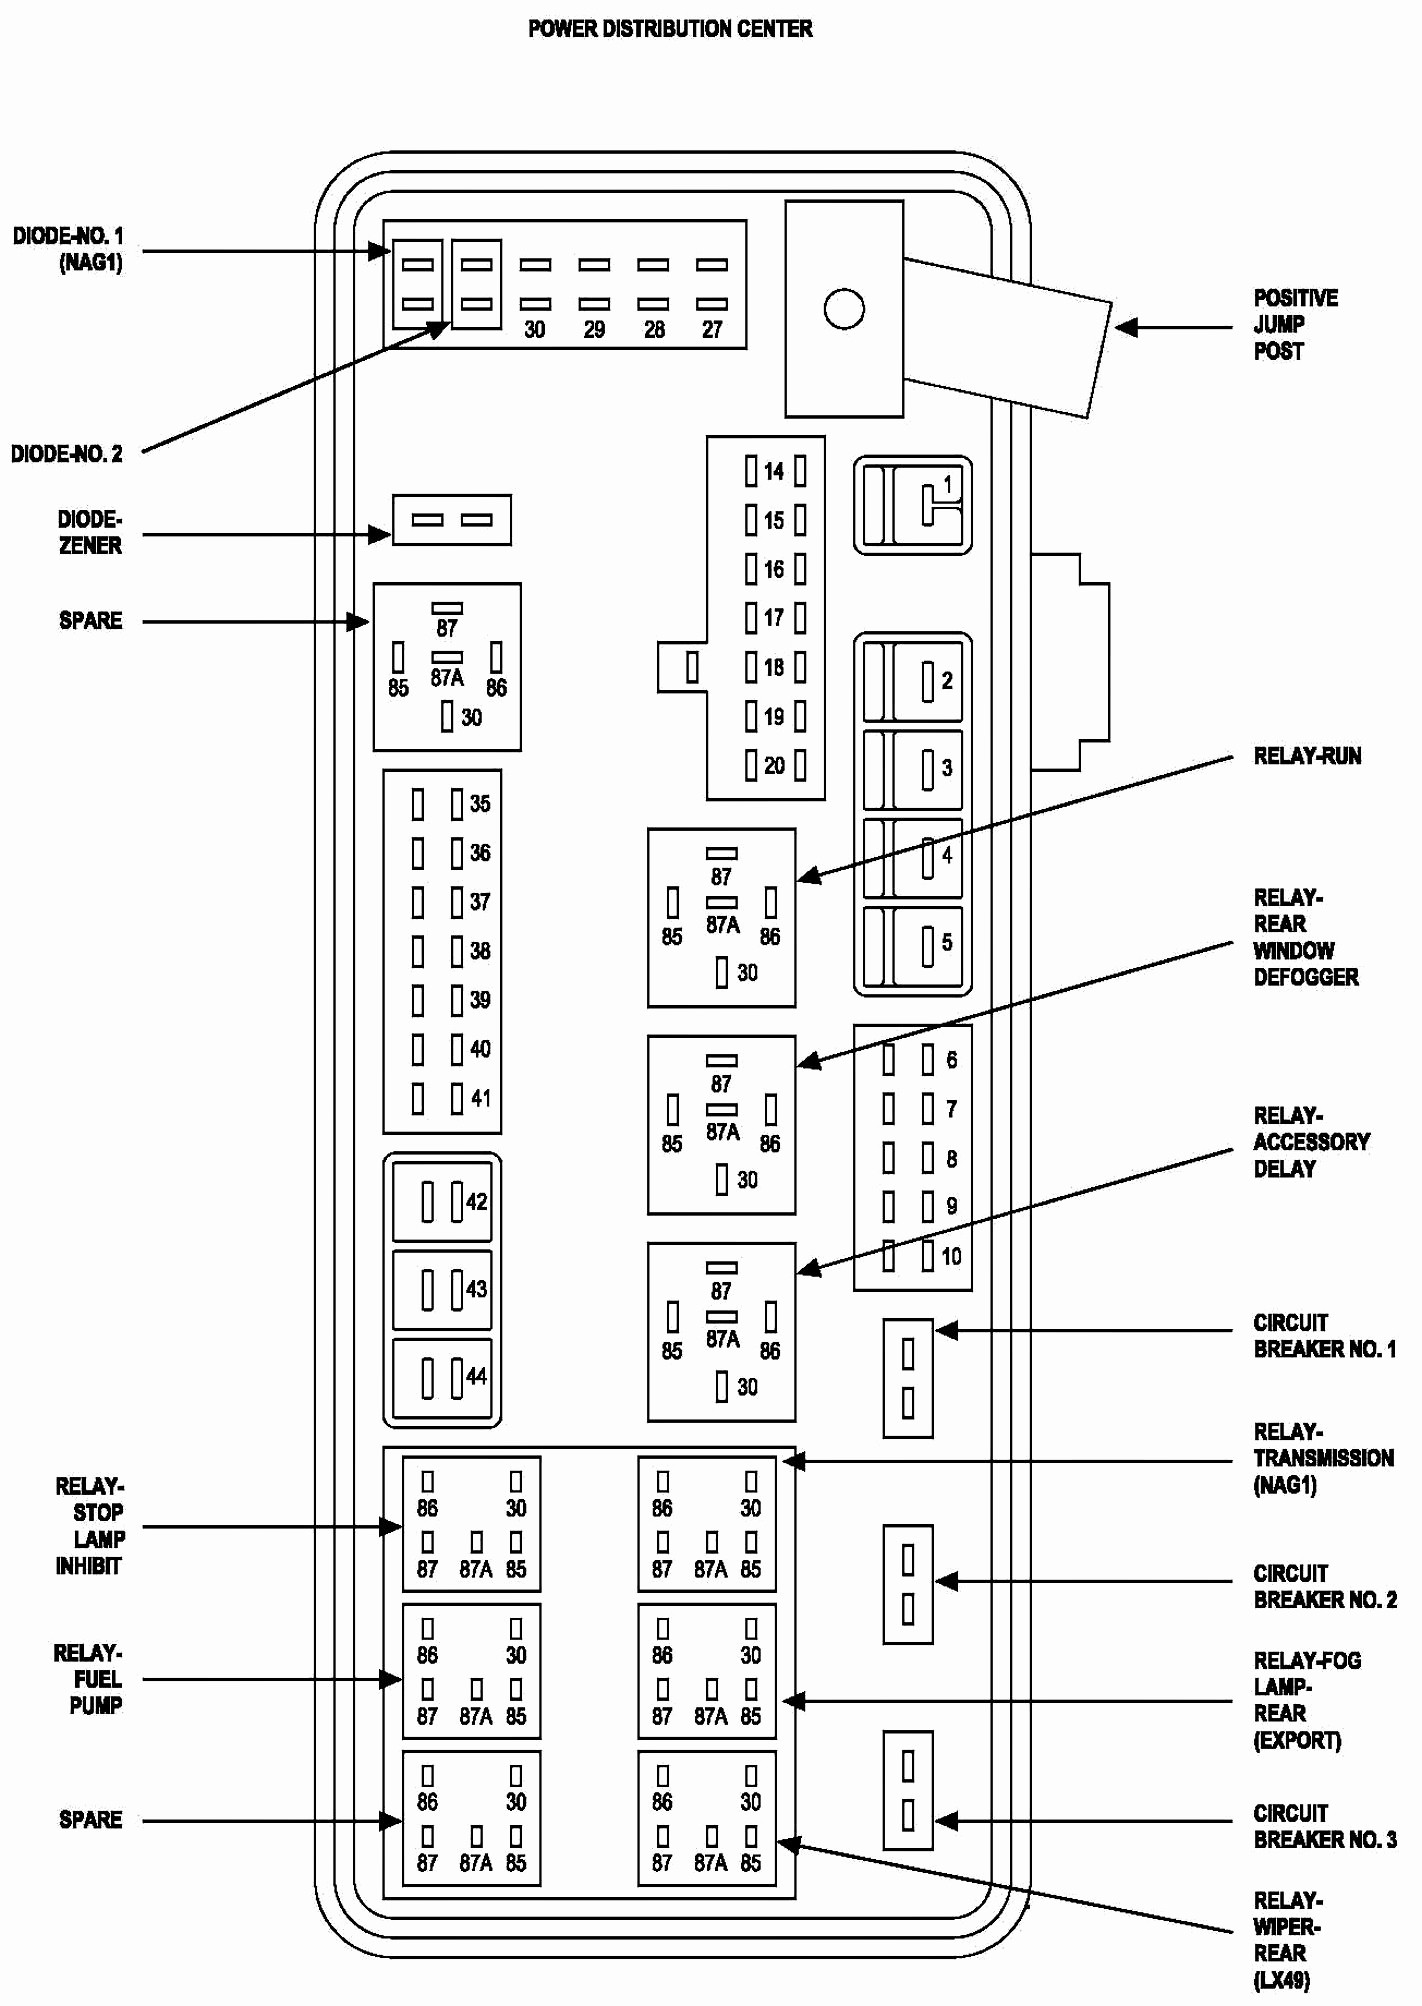 2013 dodge 1500 fuse box wiring diagram for you all u2022 rh onlinetuner co 2006 dodge ram 1500 fuse box location 2006 dodge ram 2500 fuse box location